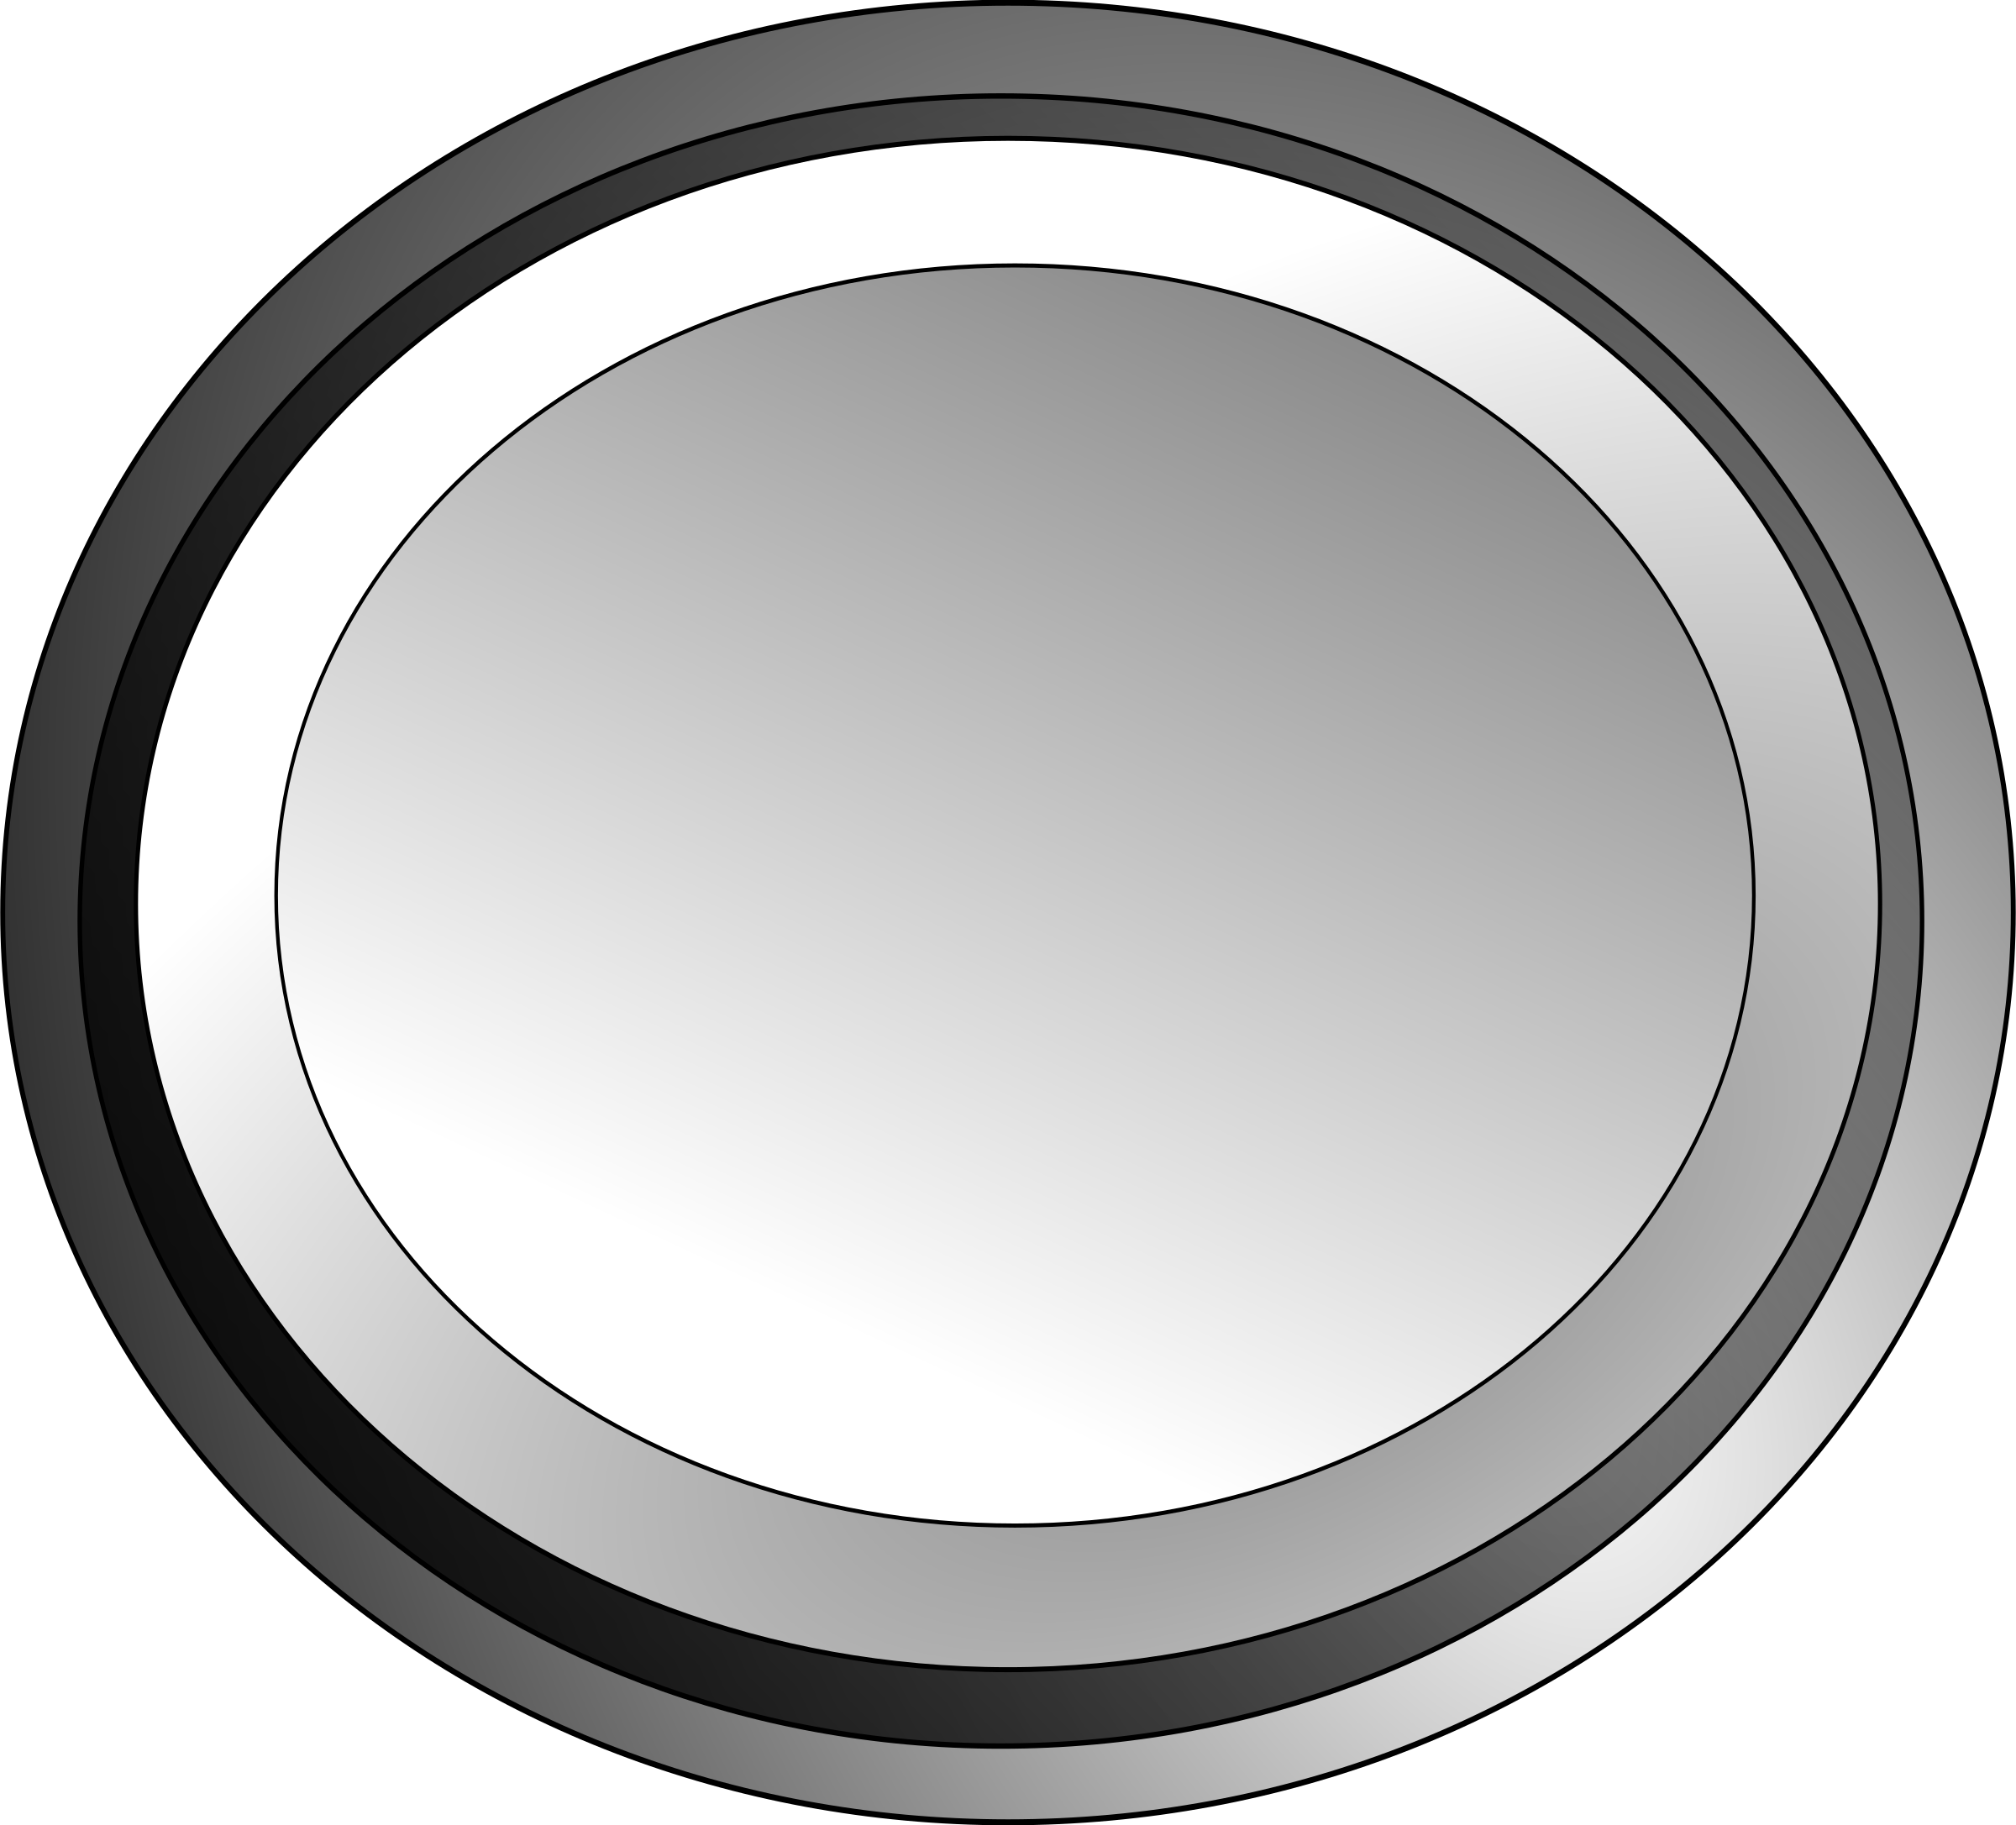 White circle button by SABROG